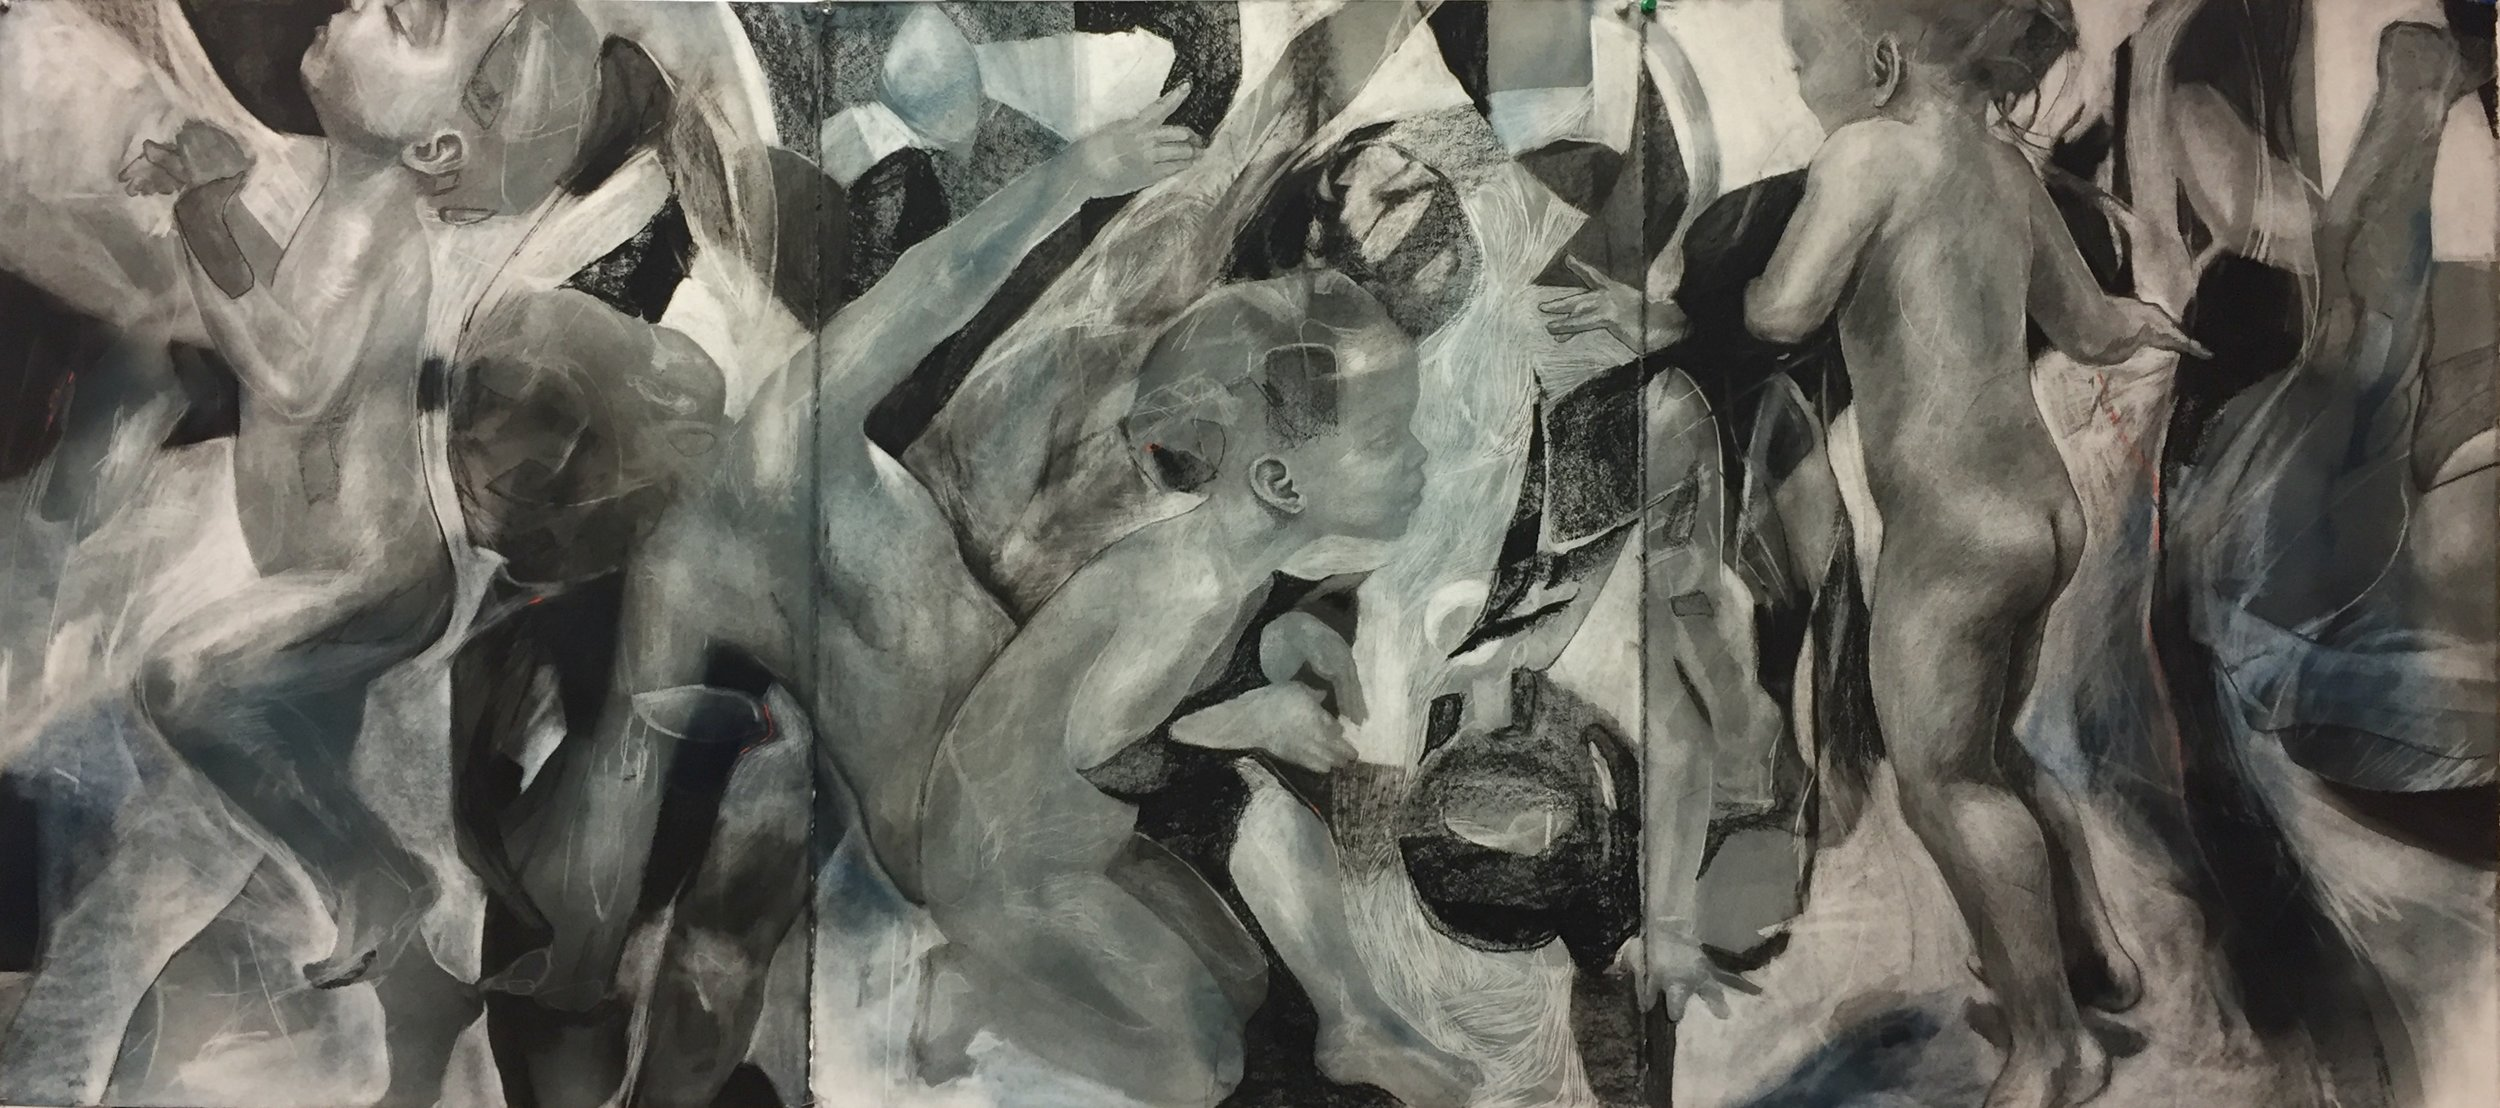 Imaginary Worlds, Charcoal on paper, 76 x 186cm